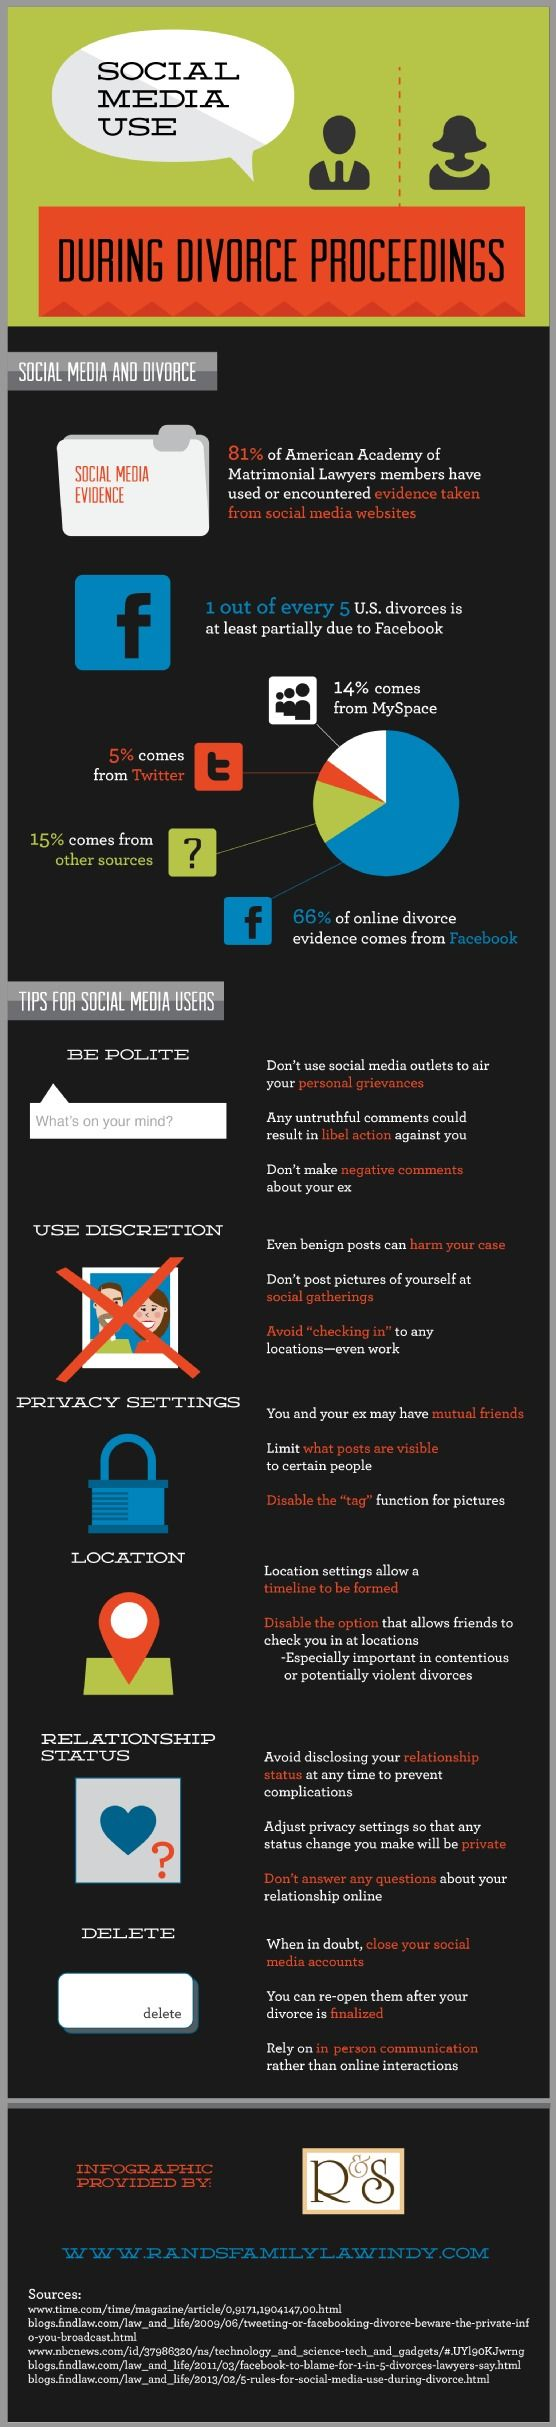 Social Media Use During Divorce Proceedings [Infographic] | By: Rubbert & Schaefer (Via: ScoopIt) | #socialmedia #divorce #infographic